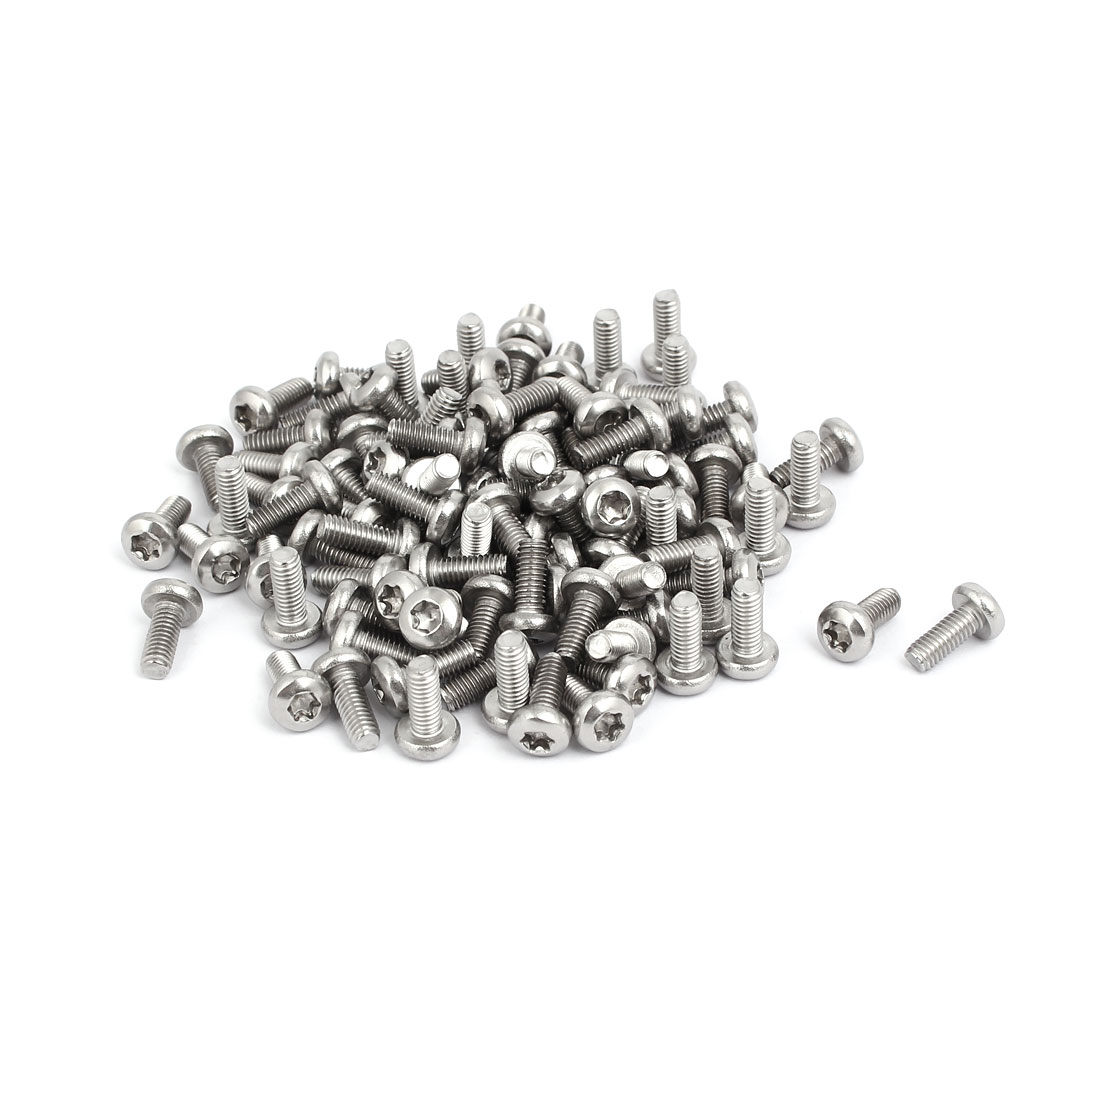 M4x10mm 304 Stainless Steel Button Head Torx Screws Bolts T20 Drive 100pcs